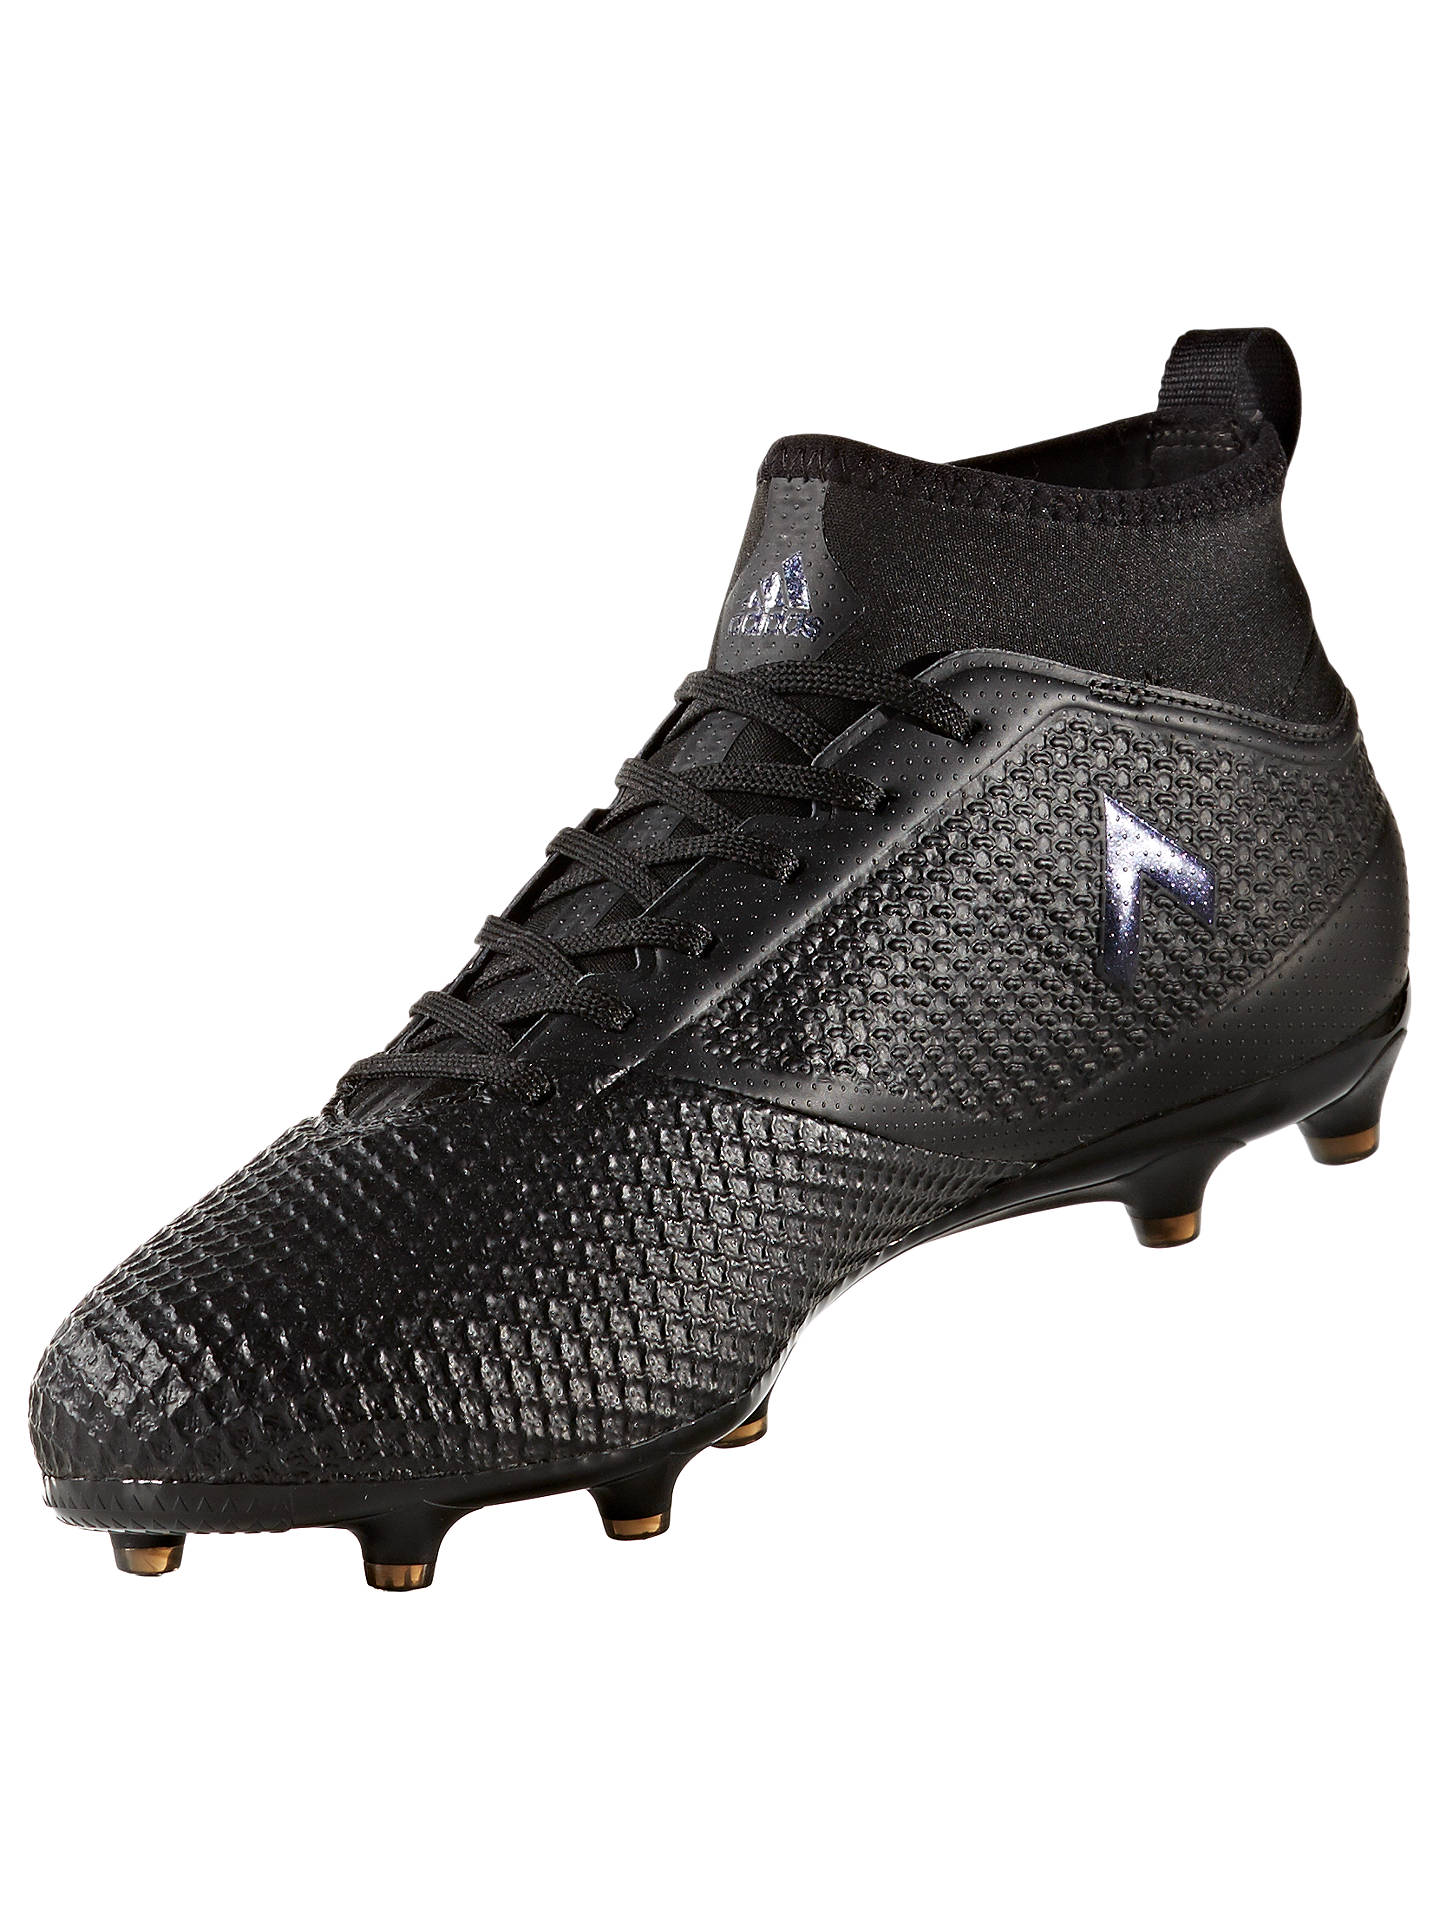 cheap for discount 1d55c 63fdc Buyadidas ACE 17.3 Firm Ground Mens Football Boots, Black, 7 Online at  johnlewis.